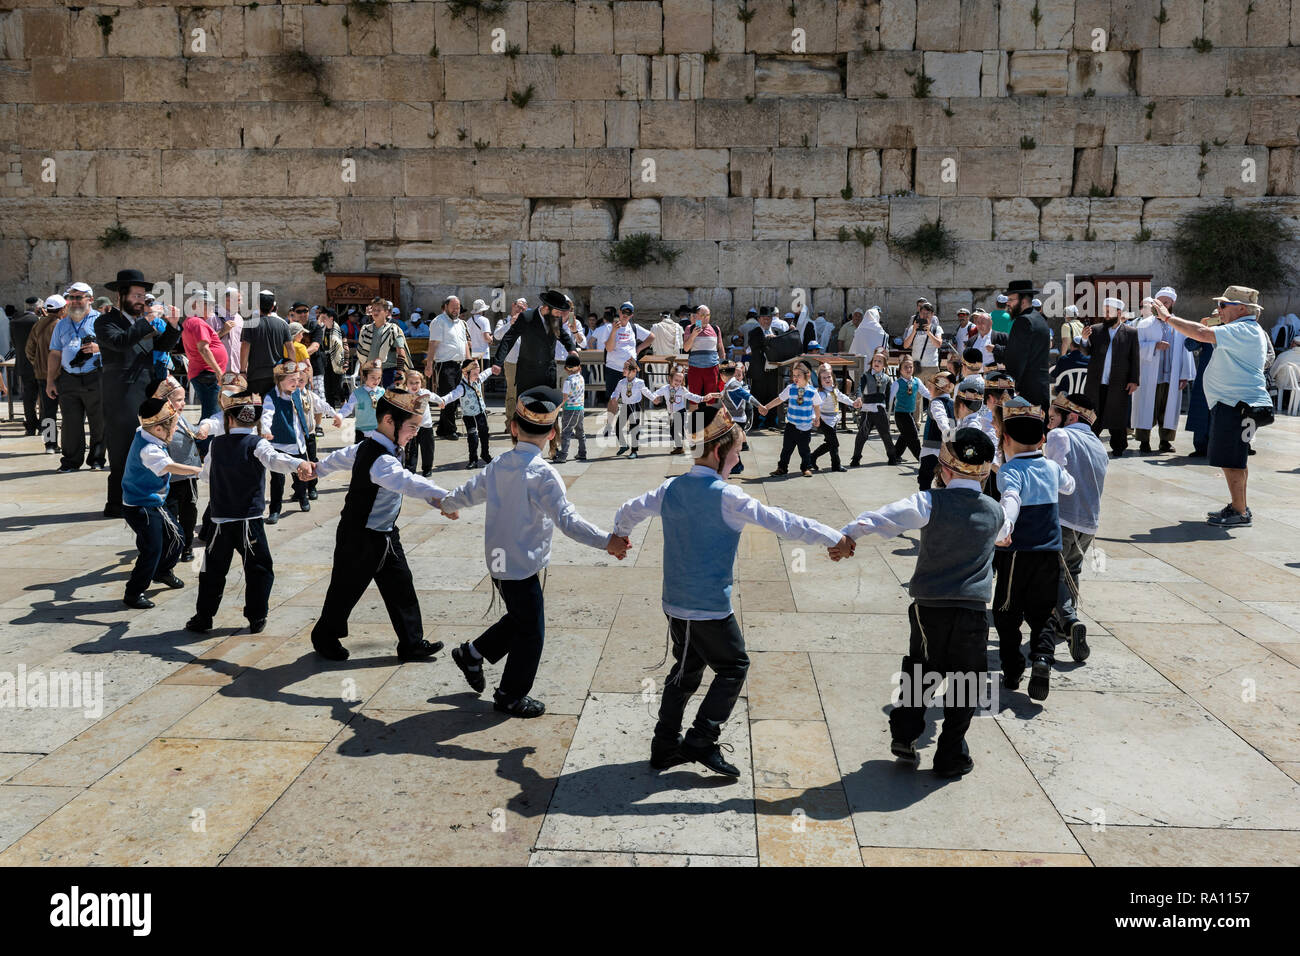 Young Jewish visitors at the Western Wall in Jerusalem. Israel - Stock Image